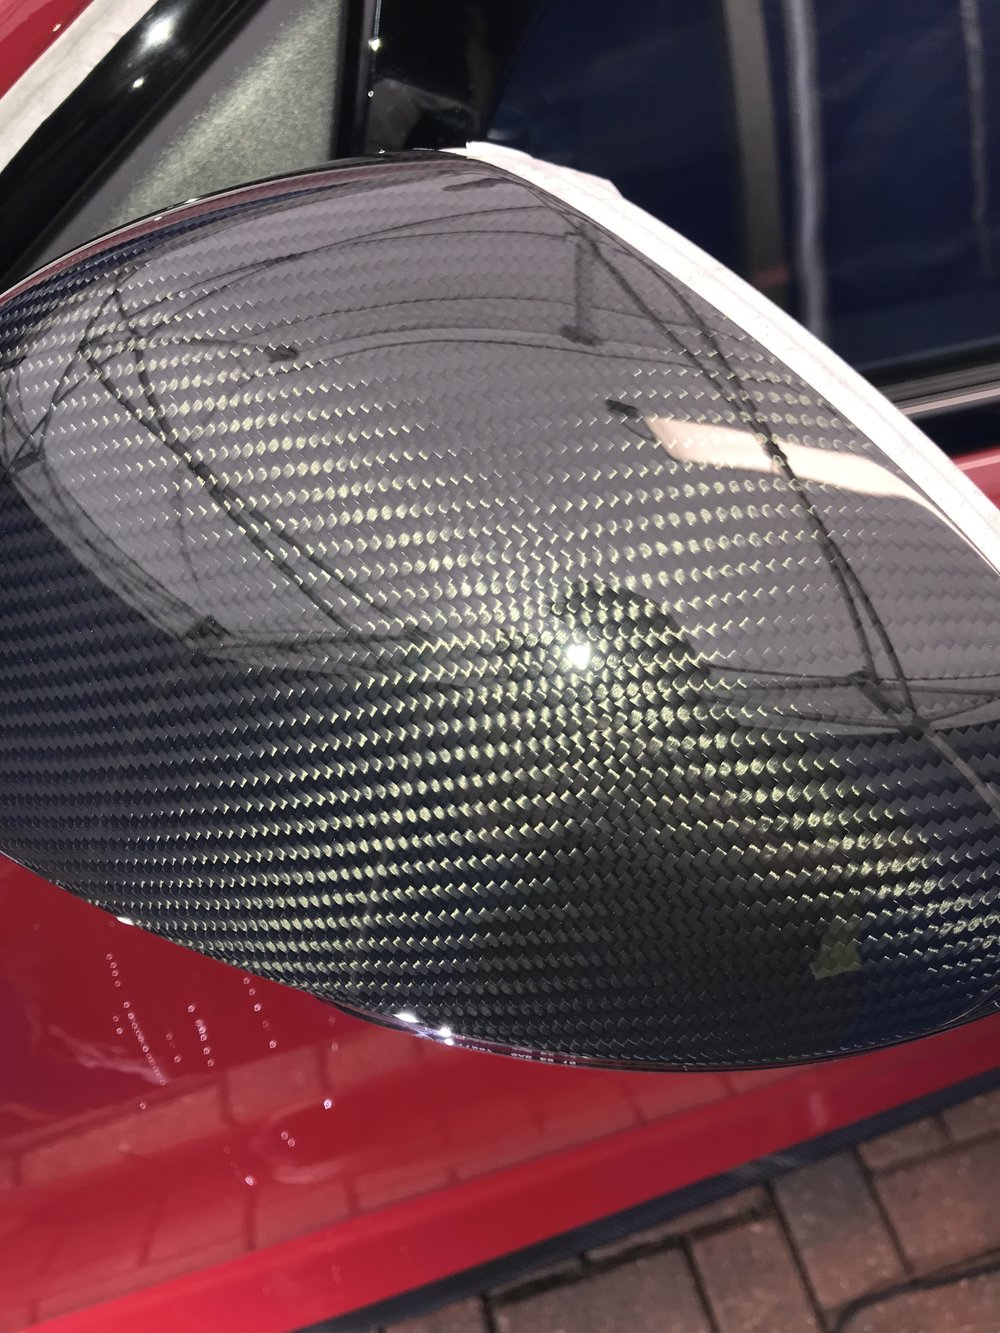 Correction of defects on carbonfiber after